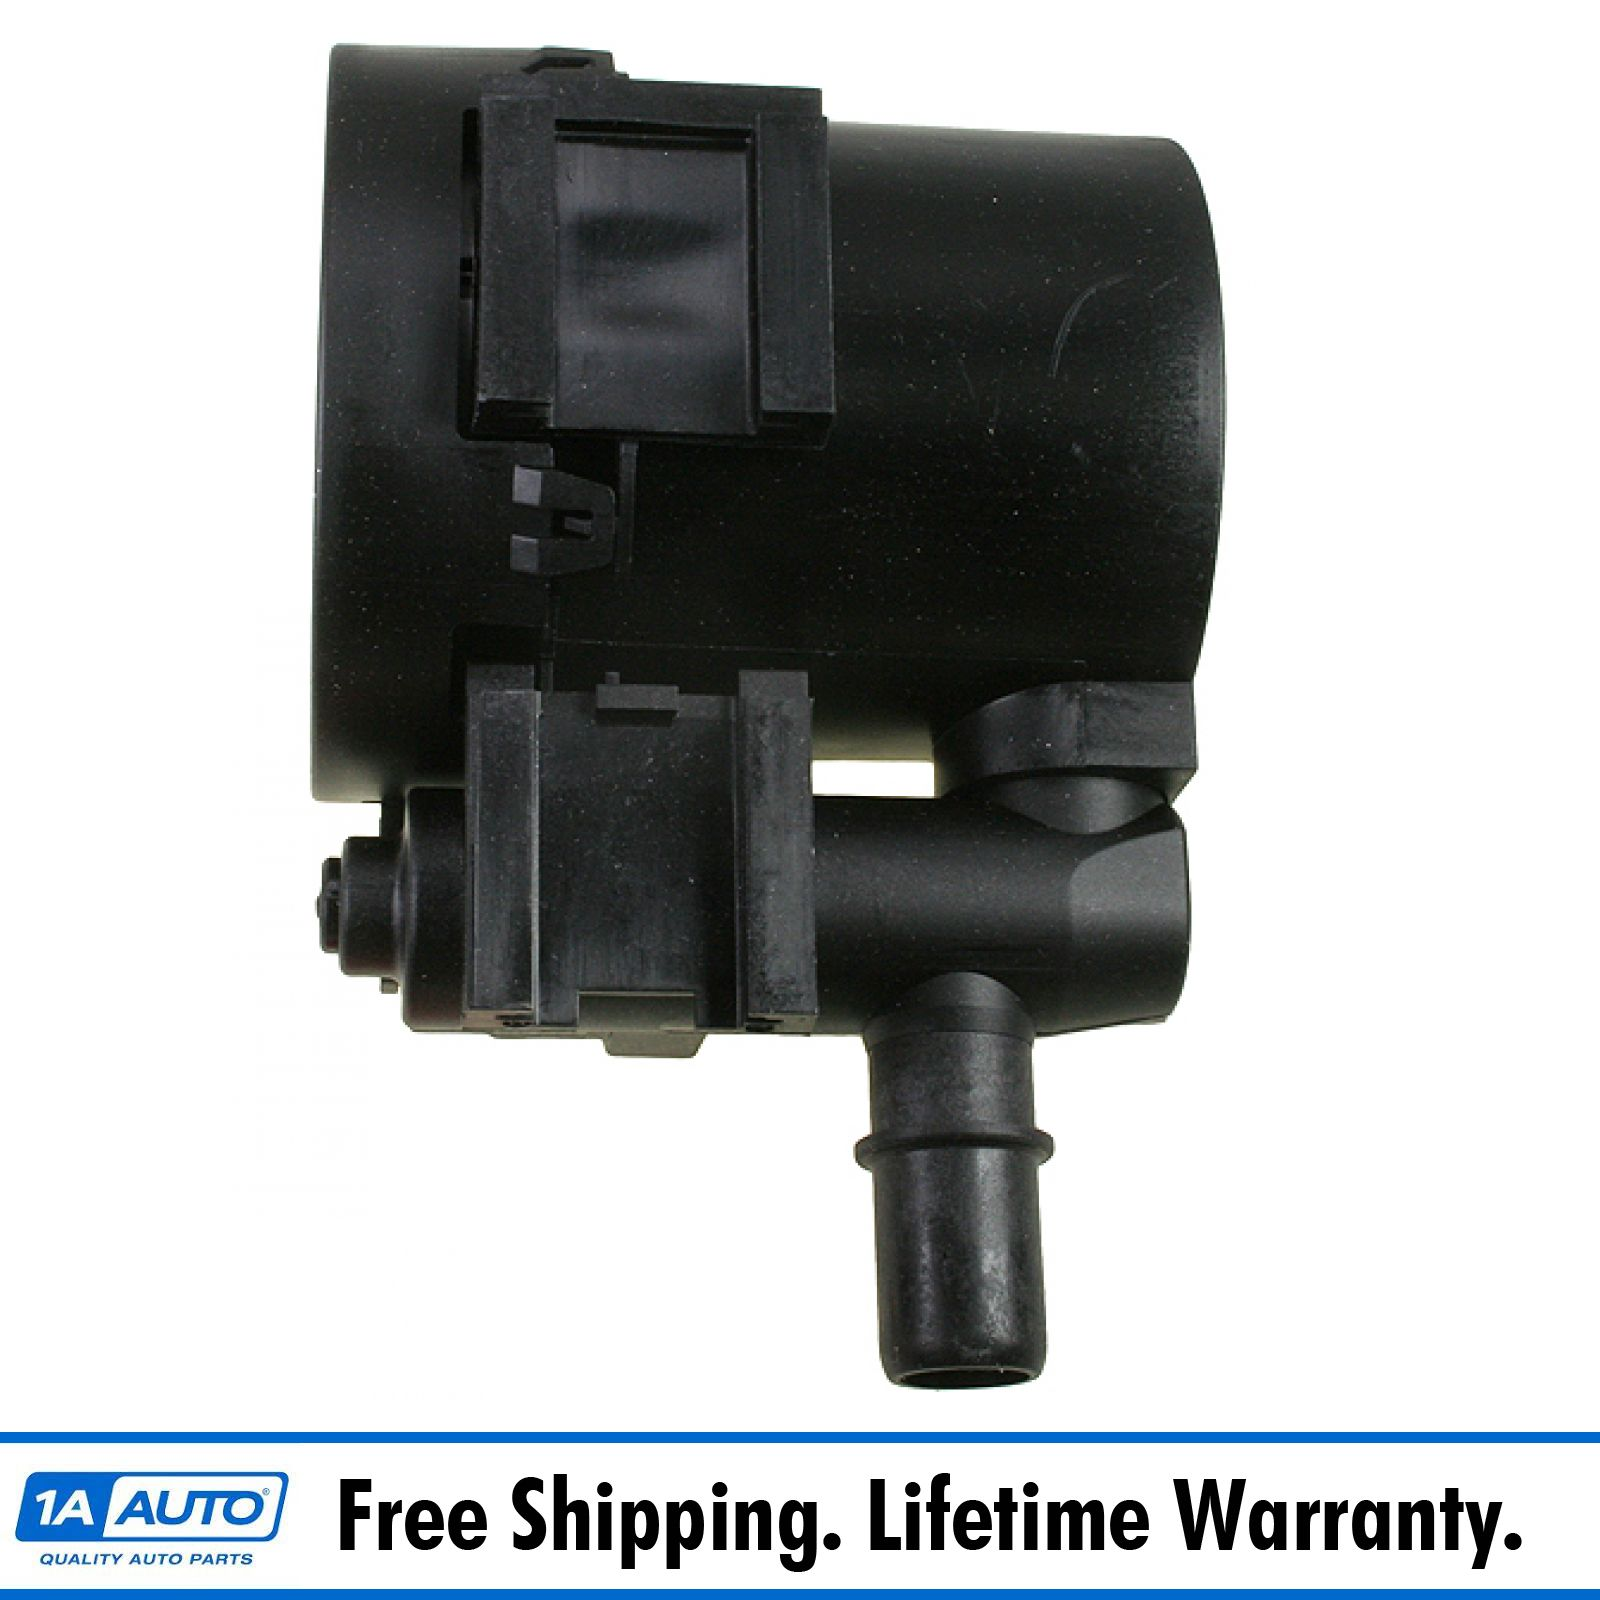 Saab Dealership Near Me >> AC DELCO 214-2149 Vapor Canister Purge Solenoid Valve for Chevy GMC Cadillac | eBay